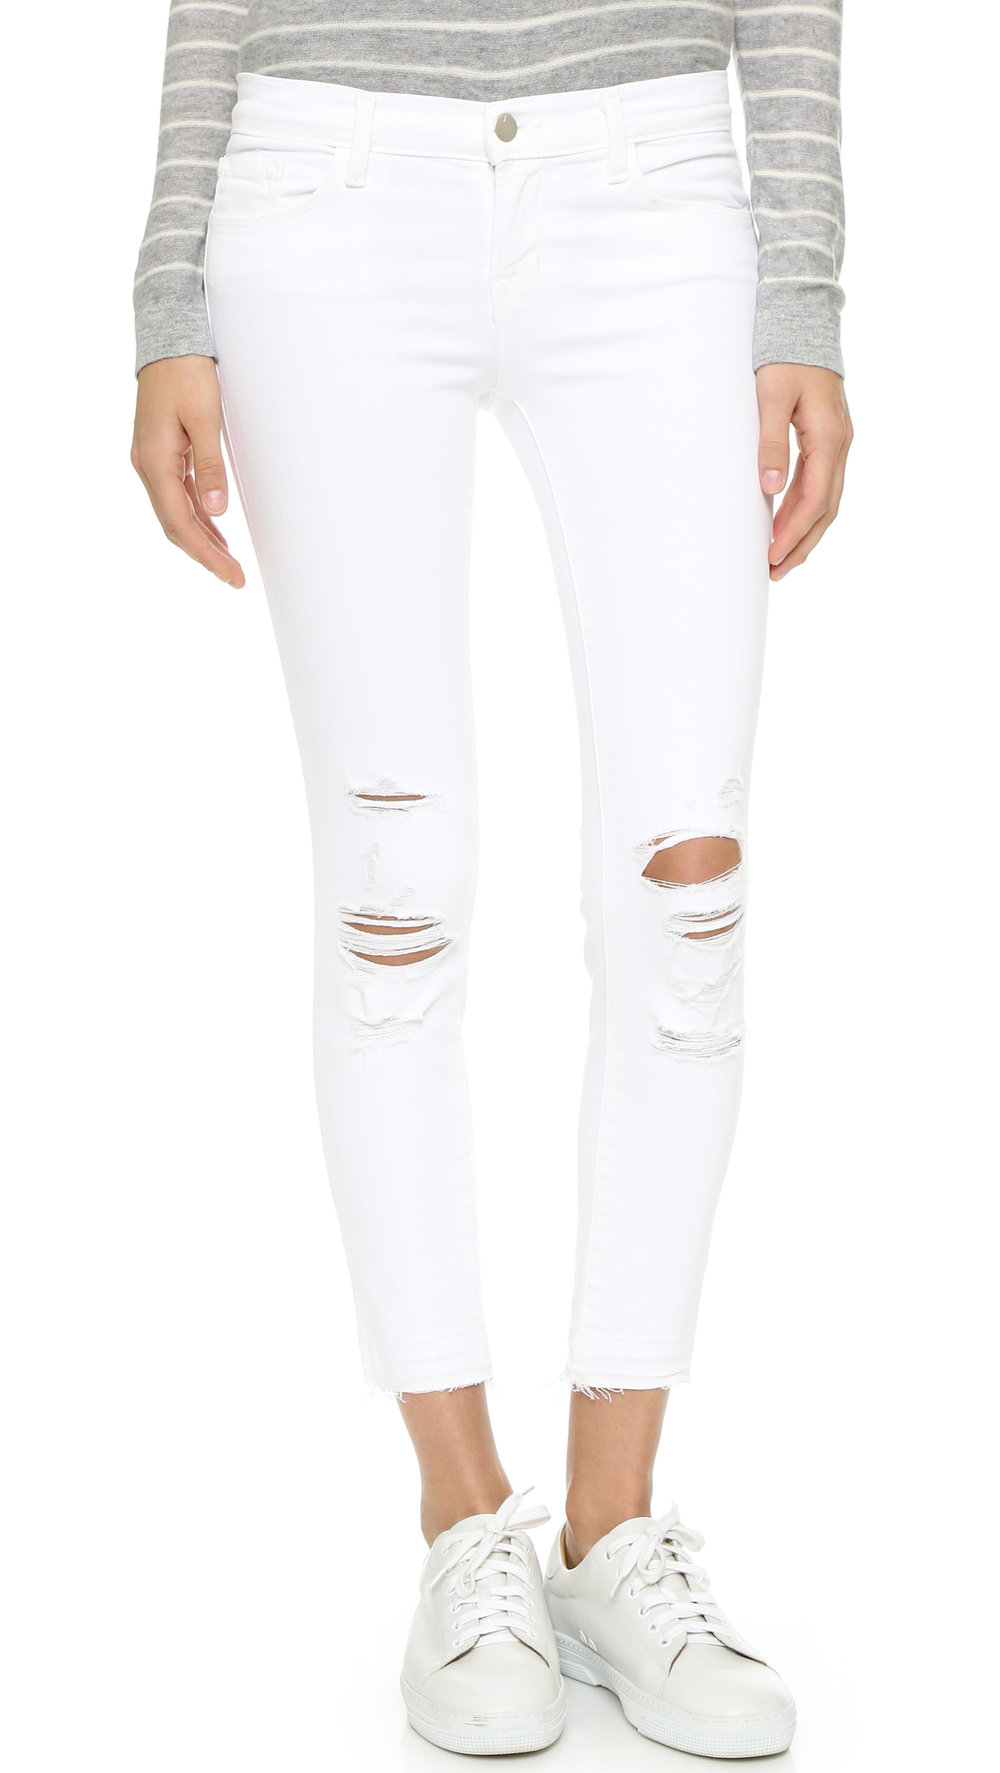 WHITE JEANS ARE BASIC, YOU NEED TO FIND A NICE FIT SINCE THIS COLOR IS QUITE HARD IF THE FIT IS NOT WELL. loVE THIS OPTION!